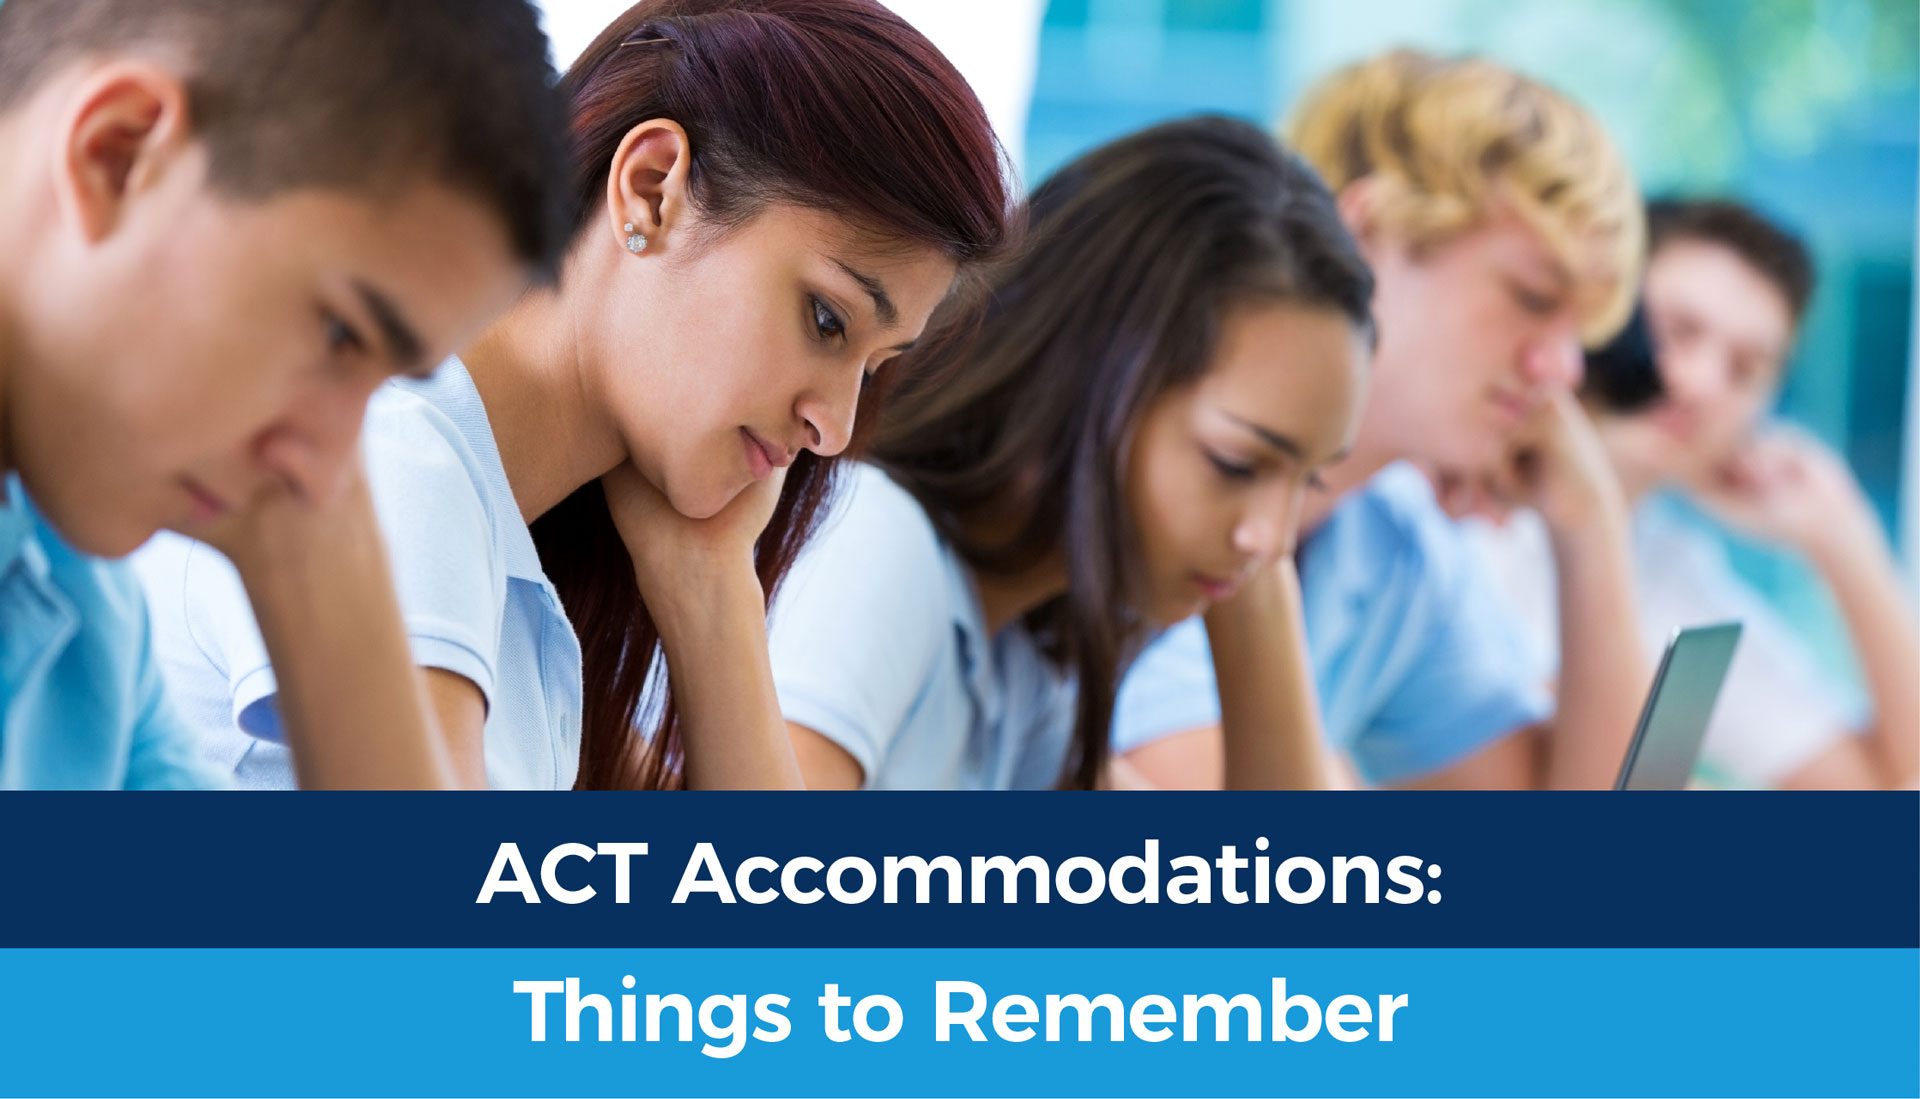 ACT Accomodations: Things to Remember